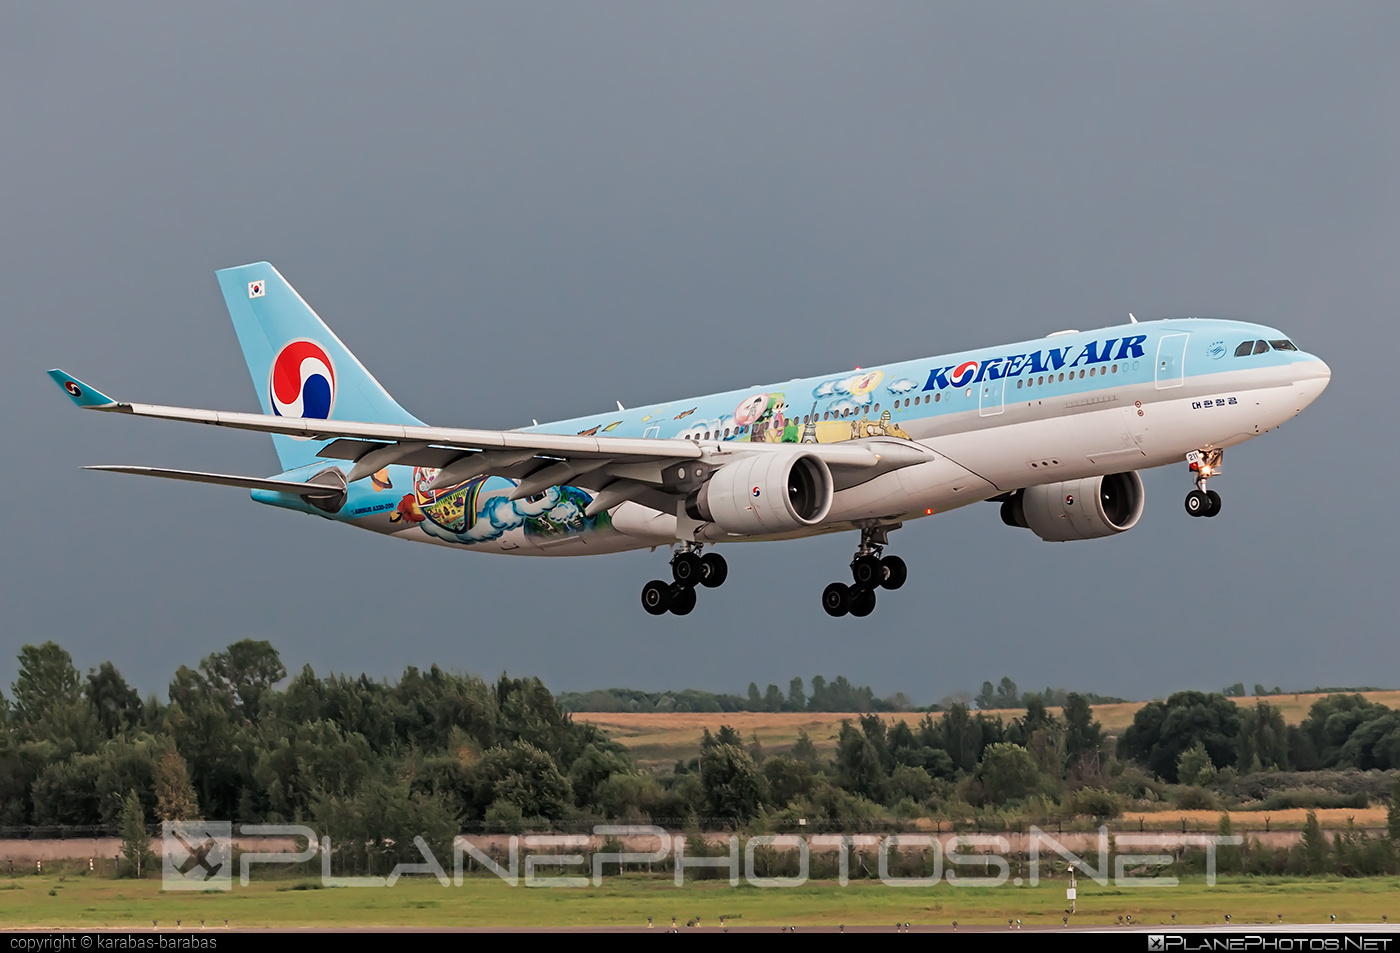 Airbus A330-223 - HL8211 operated by Korean Air #a330 #a330family #airbus #airbus330 #koreanair